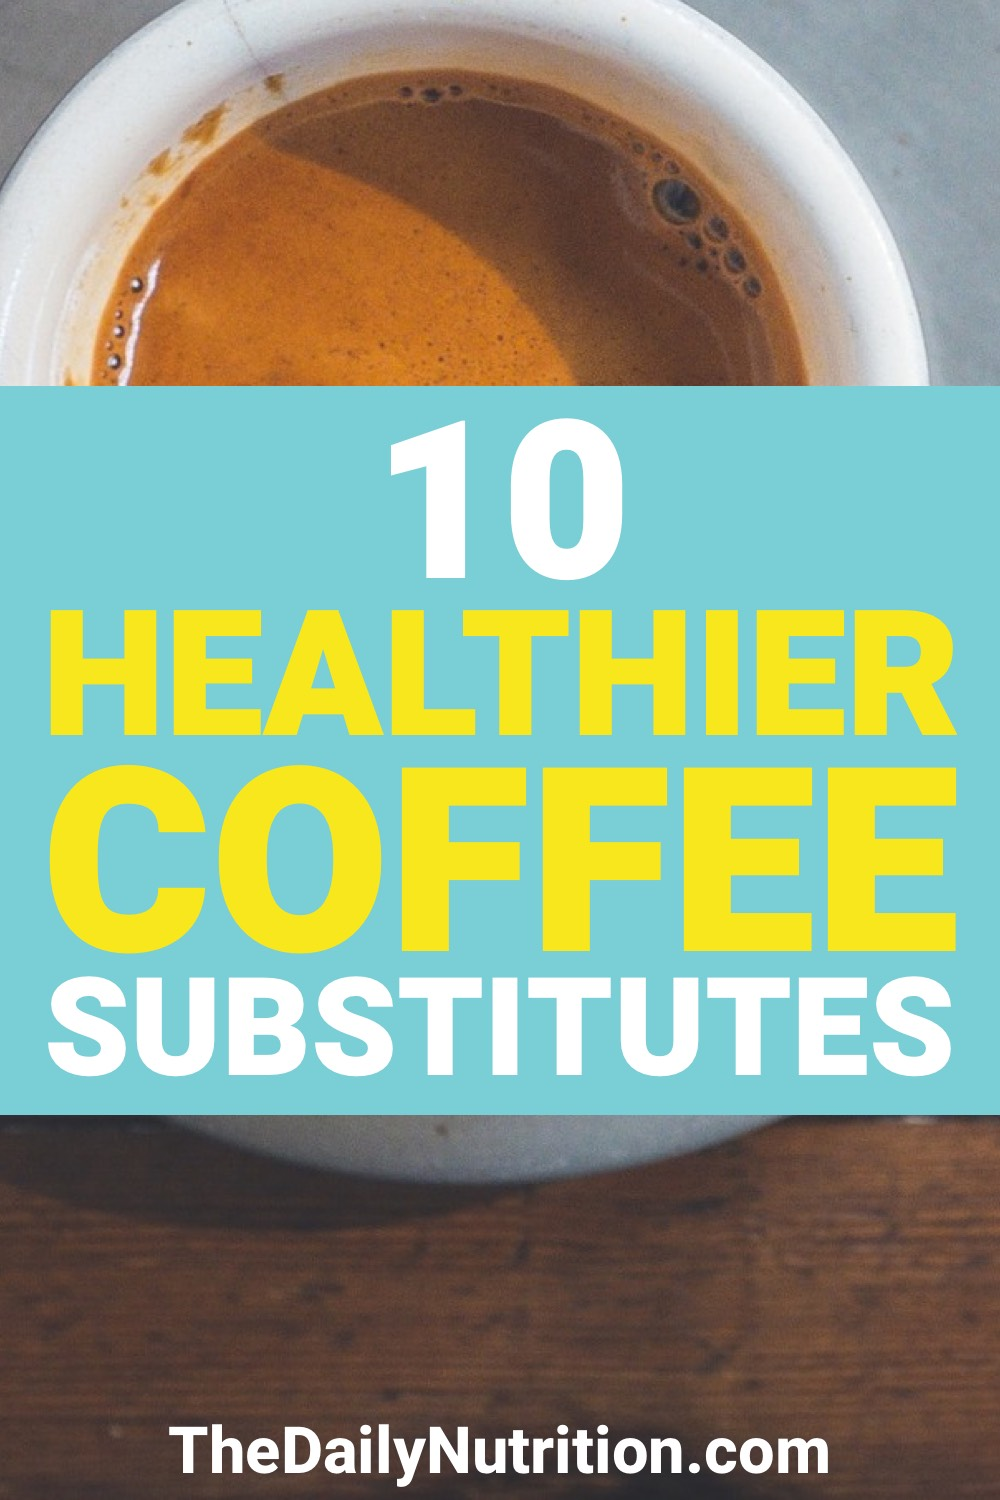 A lot of people could use a coffee alternative for one reason or another. Here are 10 coffee substitutes that will come in handy.